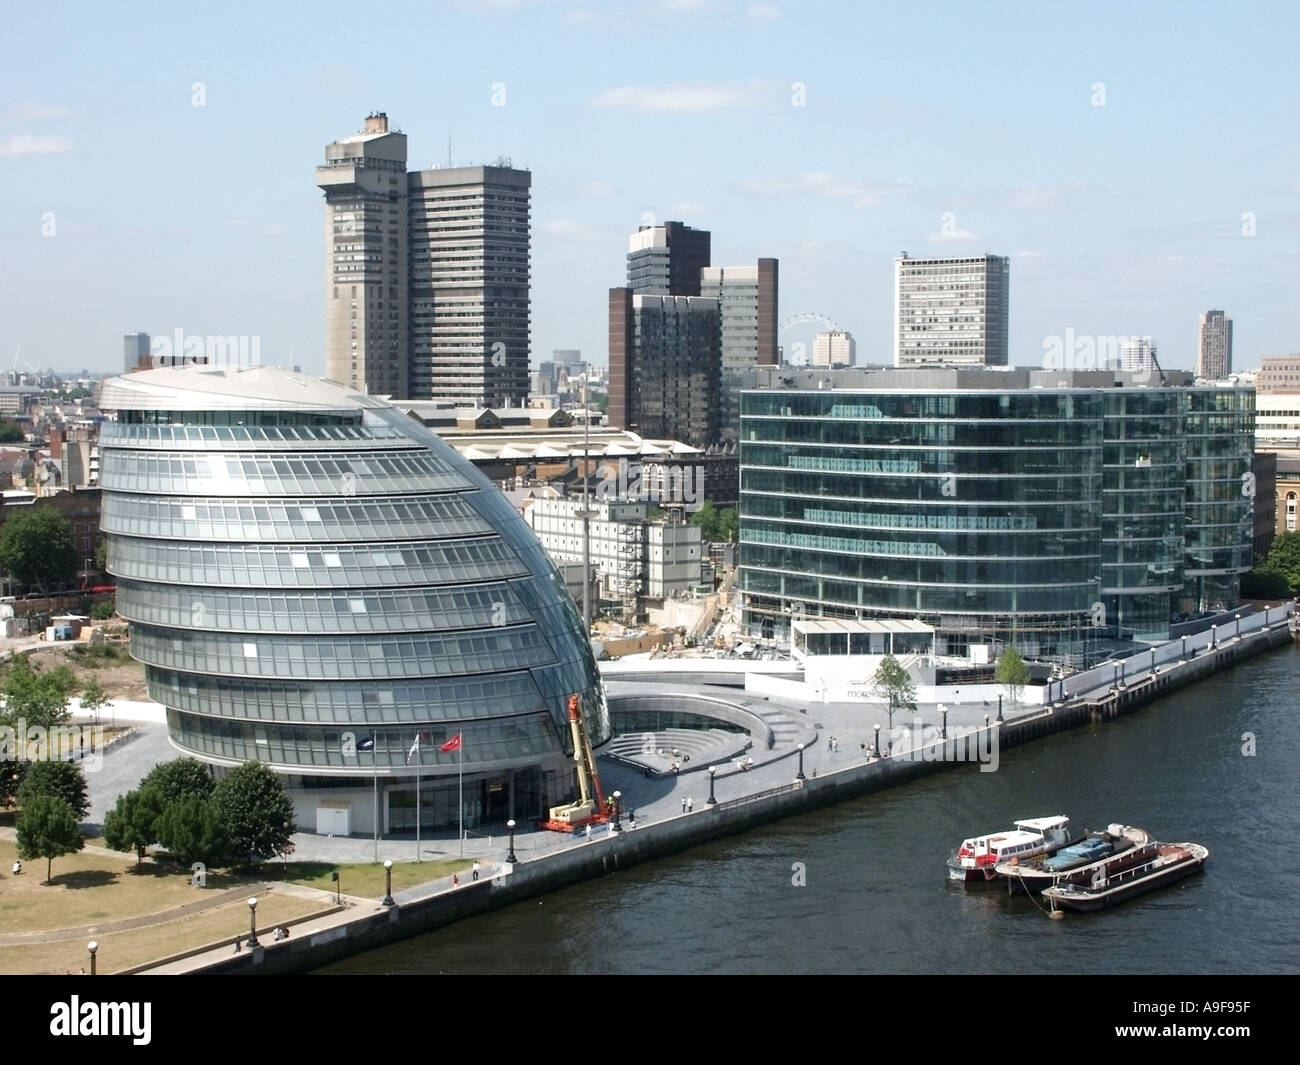 Aerial view looking down on City Hall Greater London Authority offices & More London development Guys Hospital tower block Thames Southwark England UK - Stock Image